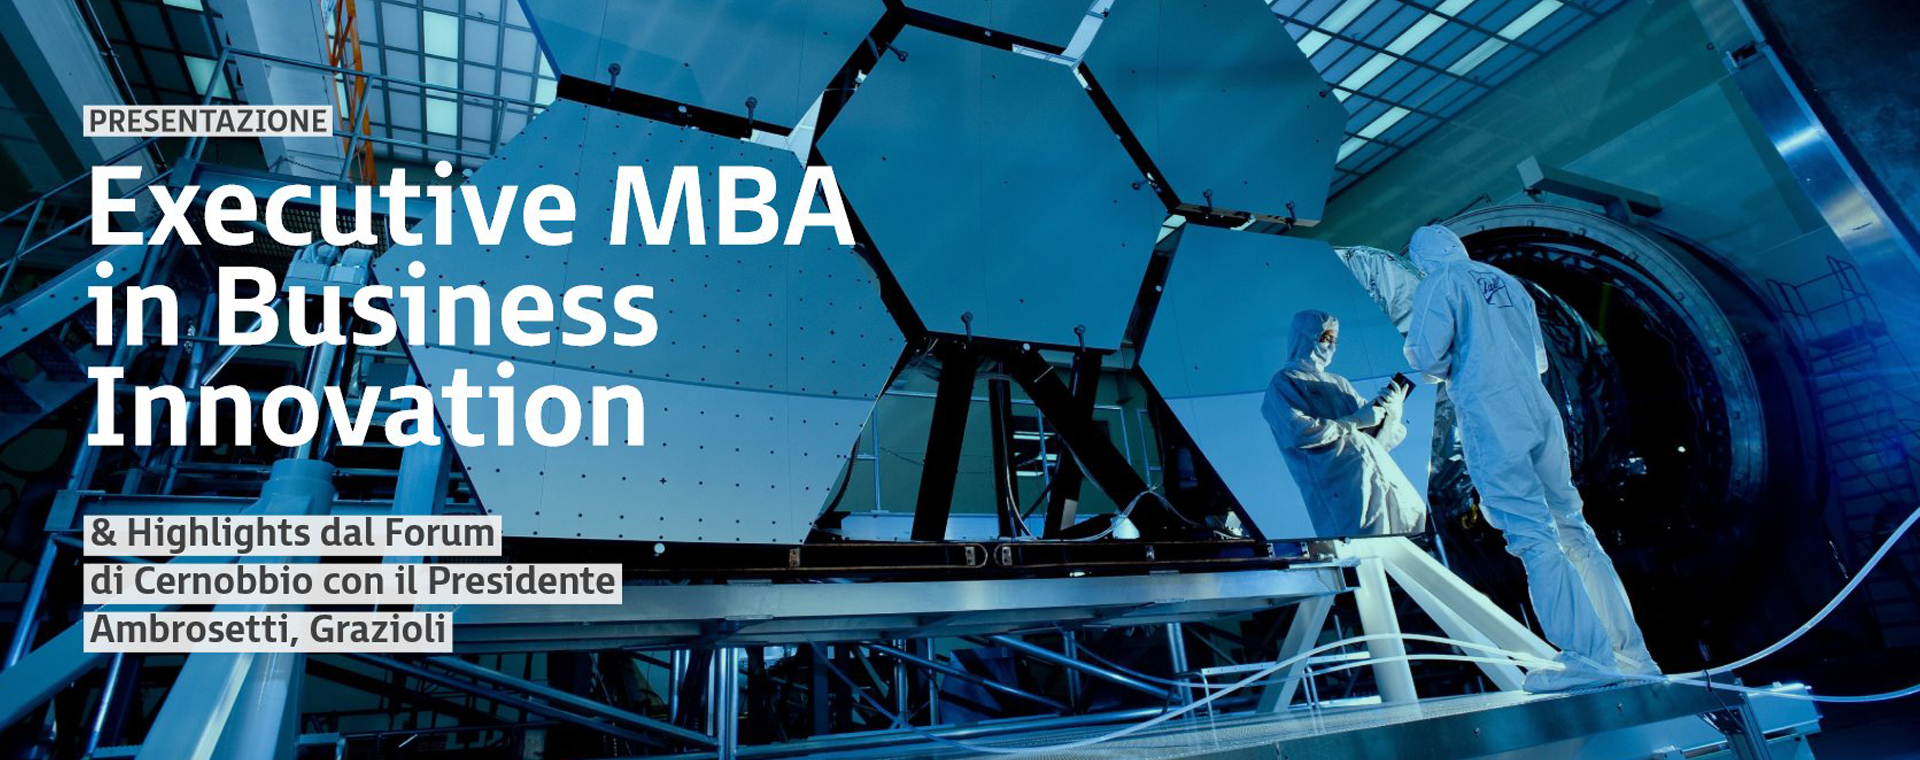 EXECUTIVE MBA IN BUSINESS INNOVATION